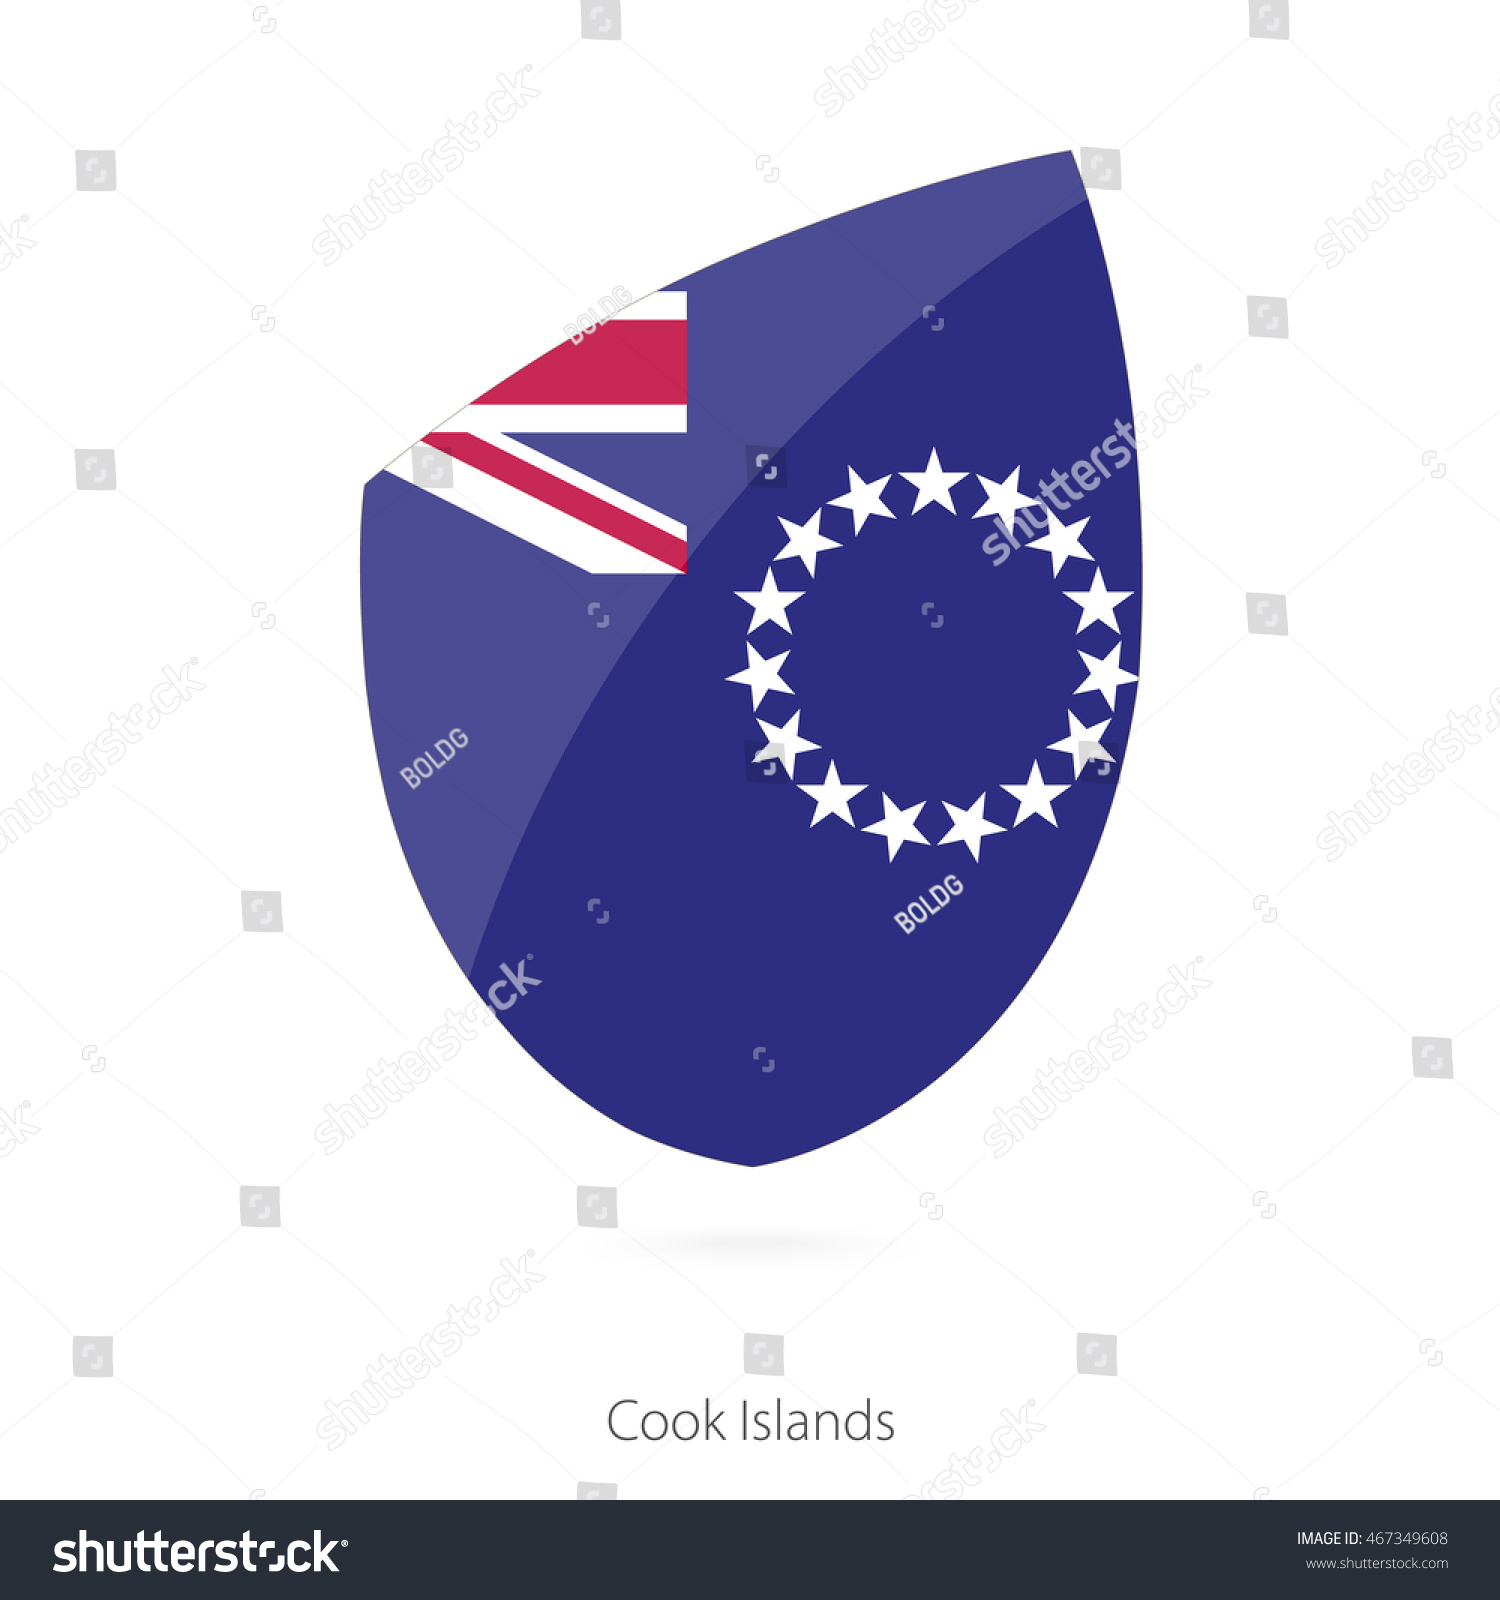 free online dating in cook islands It comprises 15 islands whose total land area is 240 square kilometres (927 sq mi) the cook islands' exclusive economic zone (eez), however, covers 1,800,000 square kilometres (690,000 sq mi) of ocean meanwhile, the share of 55- to 64-year-olds who use online dating has doubled over the same time period (from 6% in 2013 to 12% in 2015.